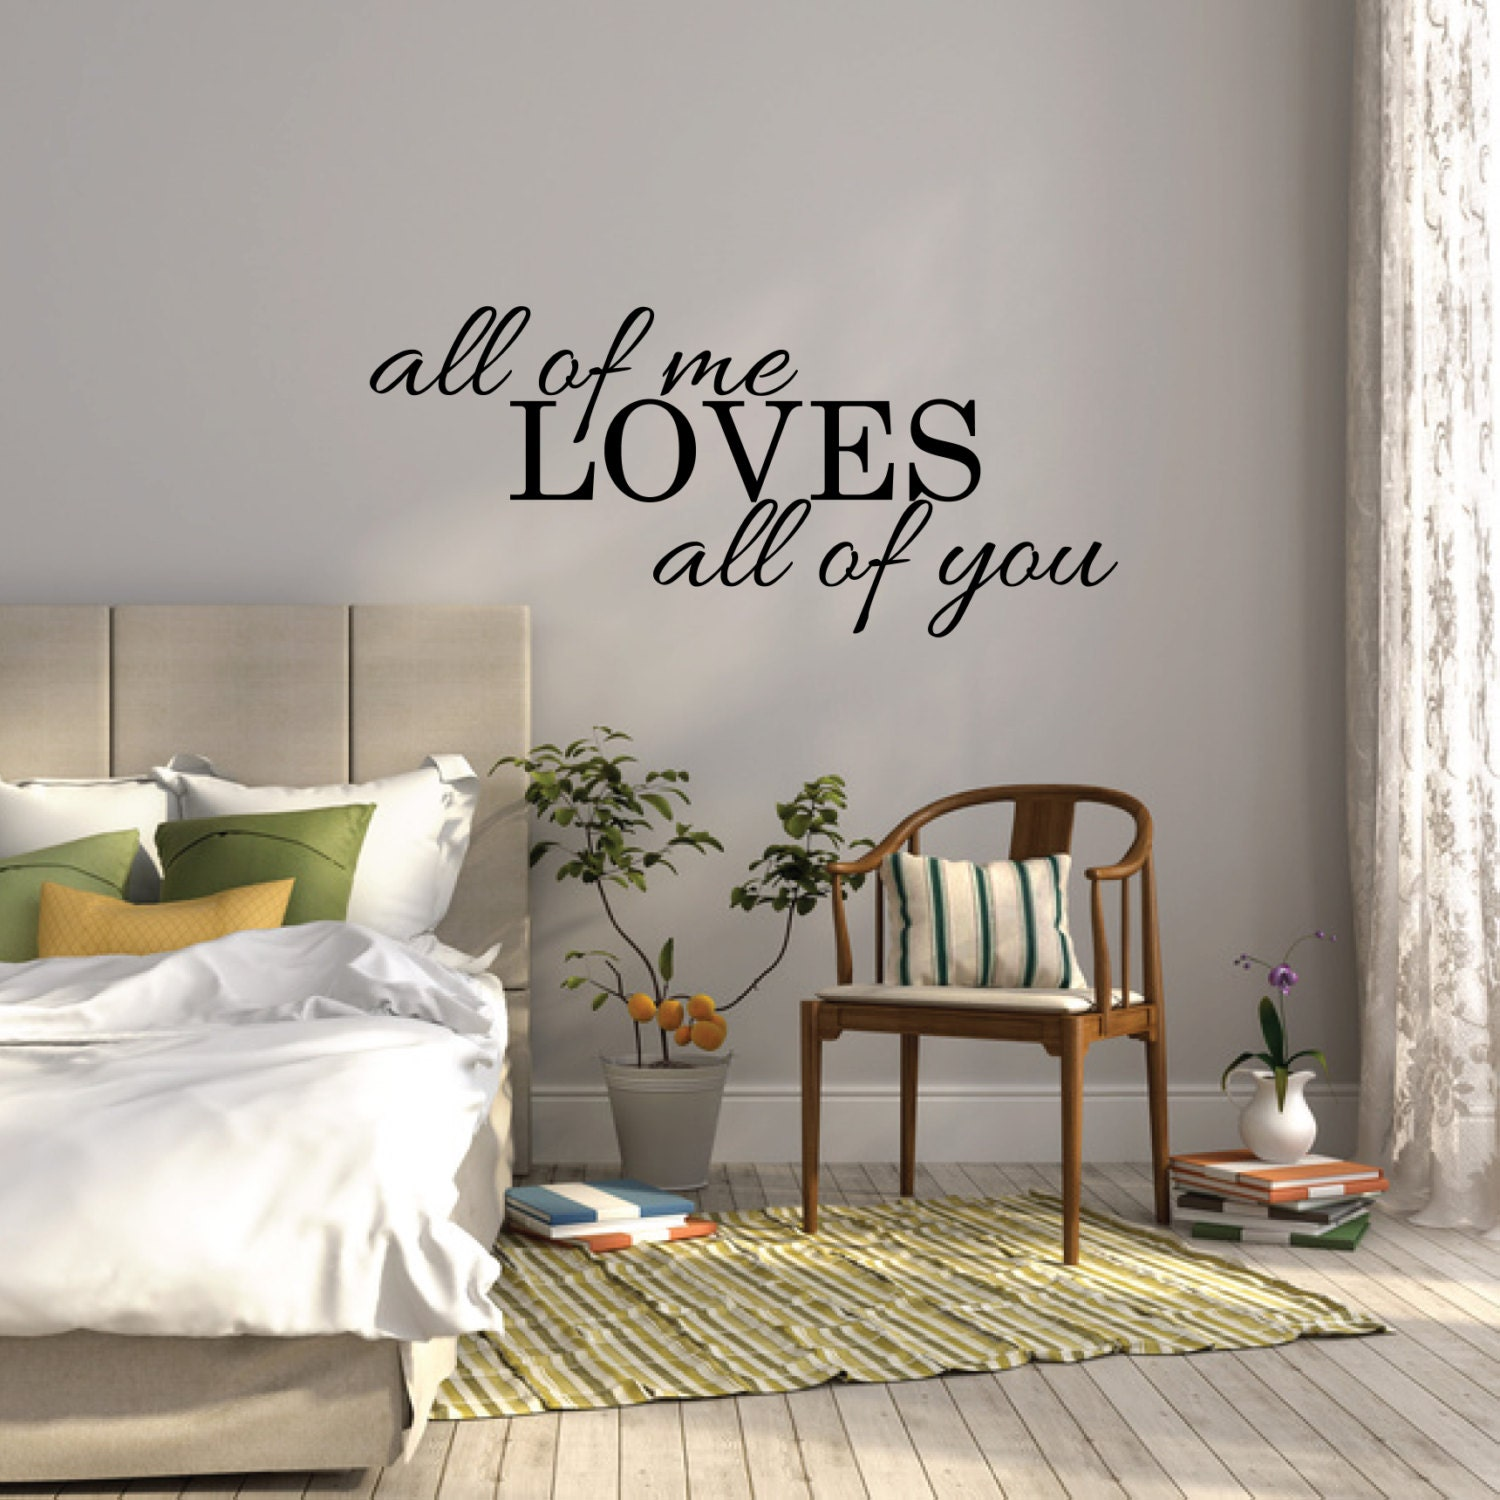 Bedroom Wall Decals Of All Of Me Loves All Of You Wall Sticker Bedroom Wall Decal